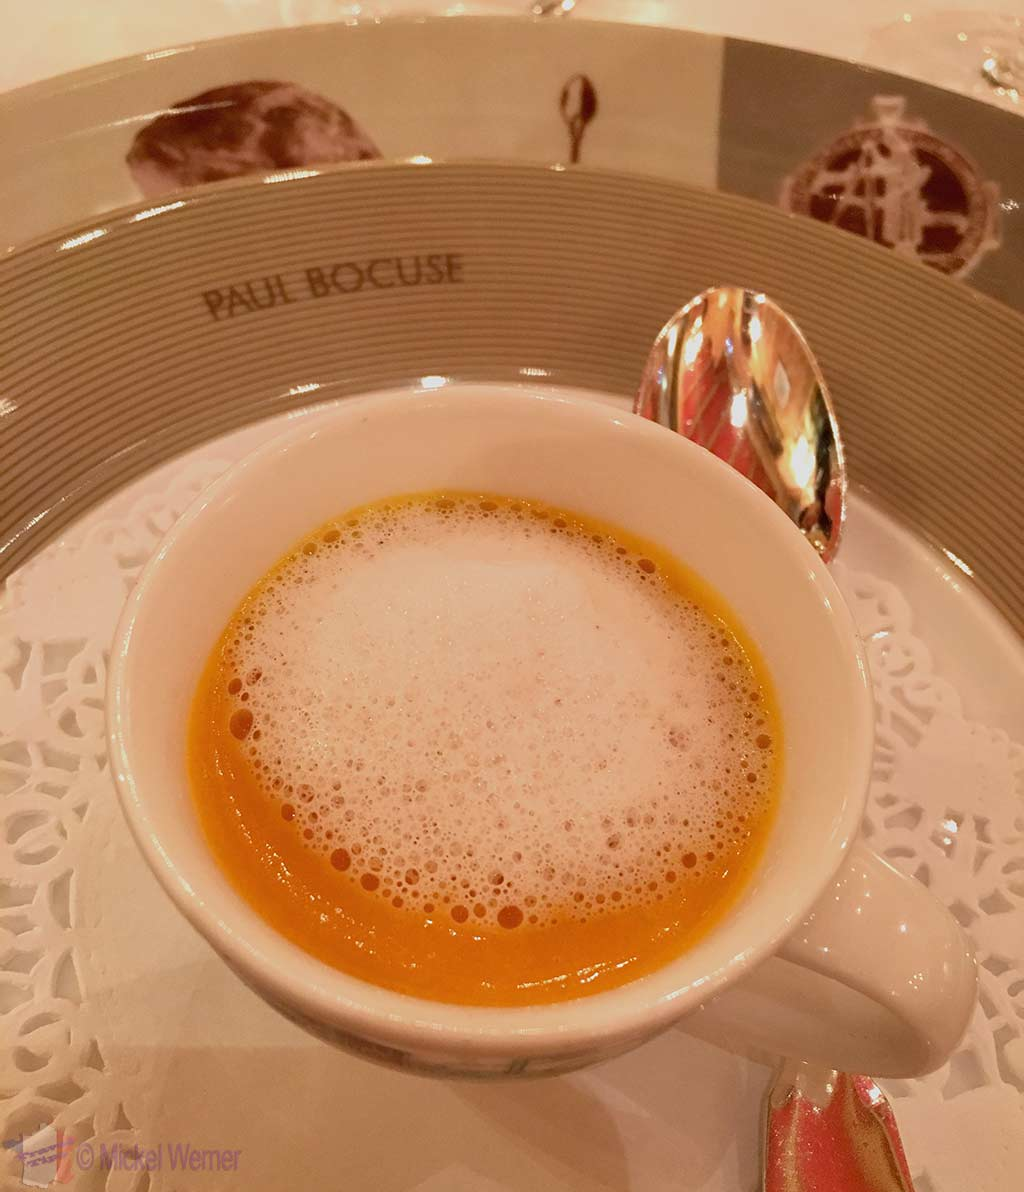 """In between"" food at Paul Bocuse restaurant"